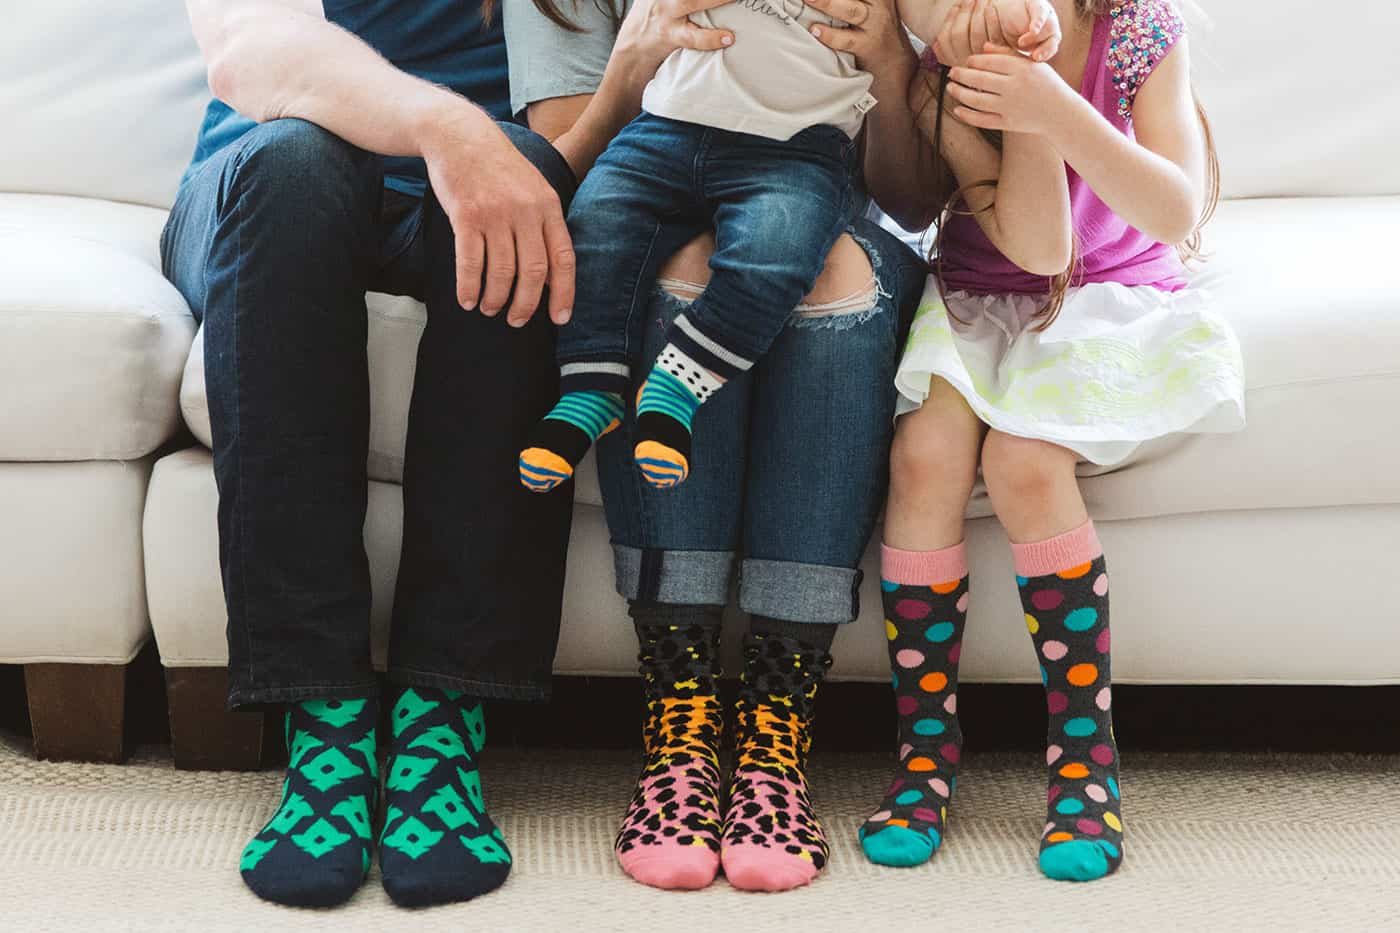 Tiffani Thiessen's Holiday Gift Guide 2016: For the family: Happy Socks